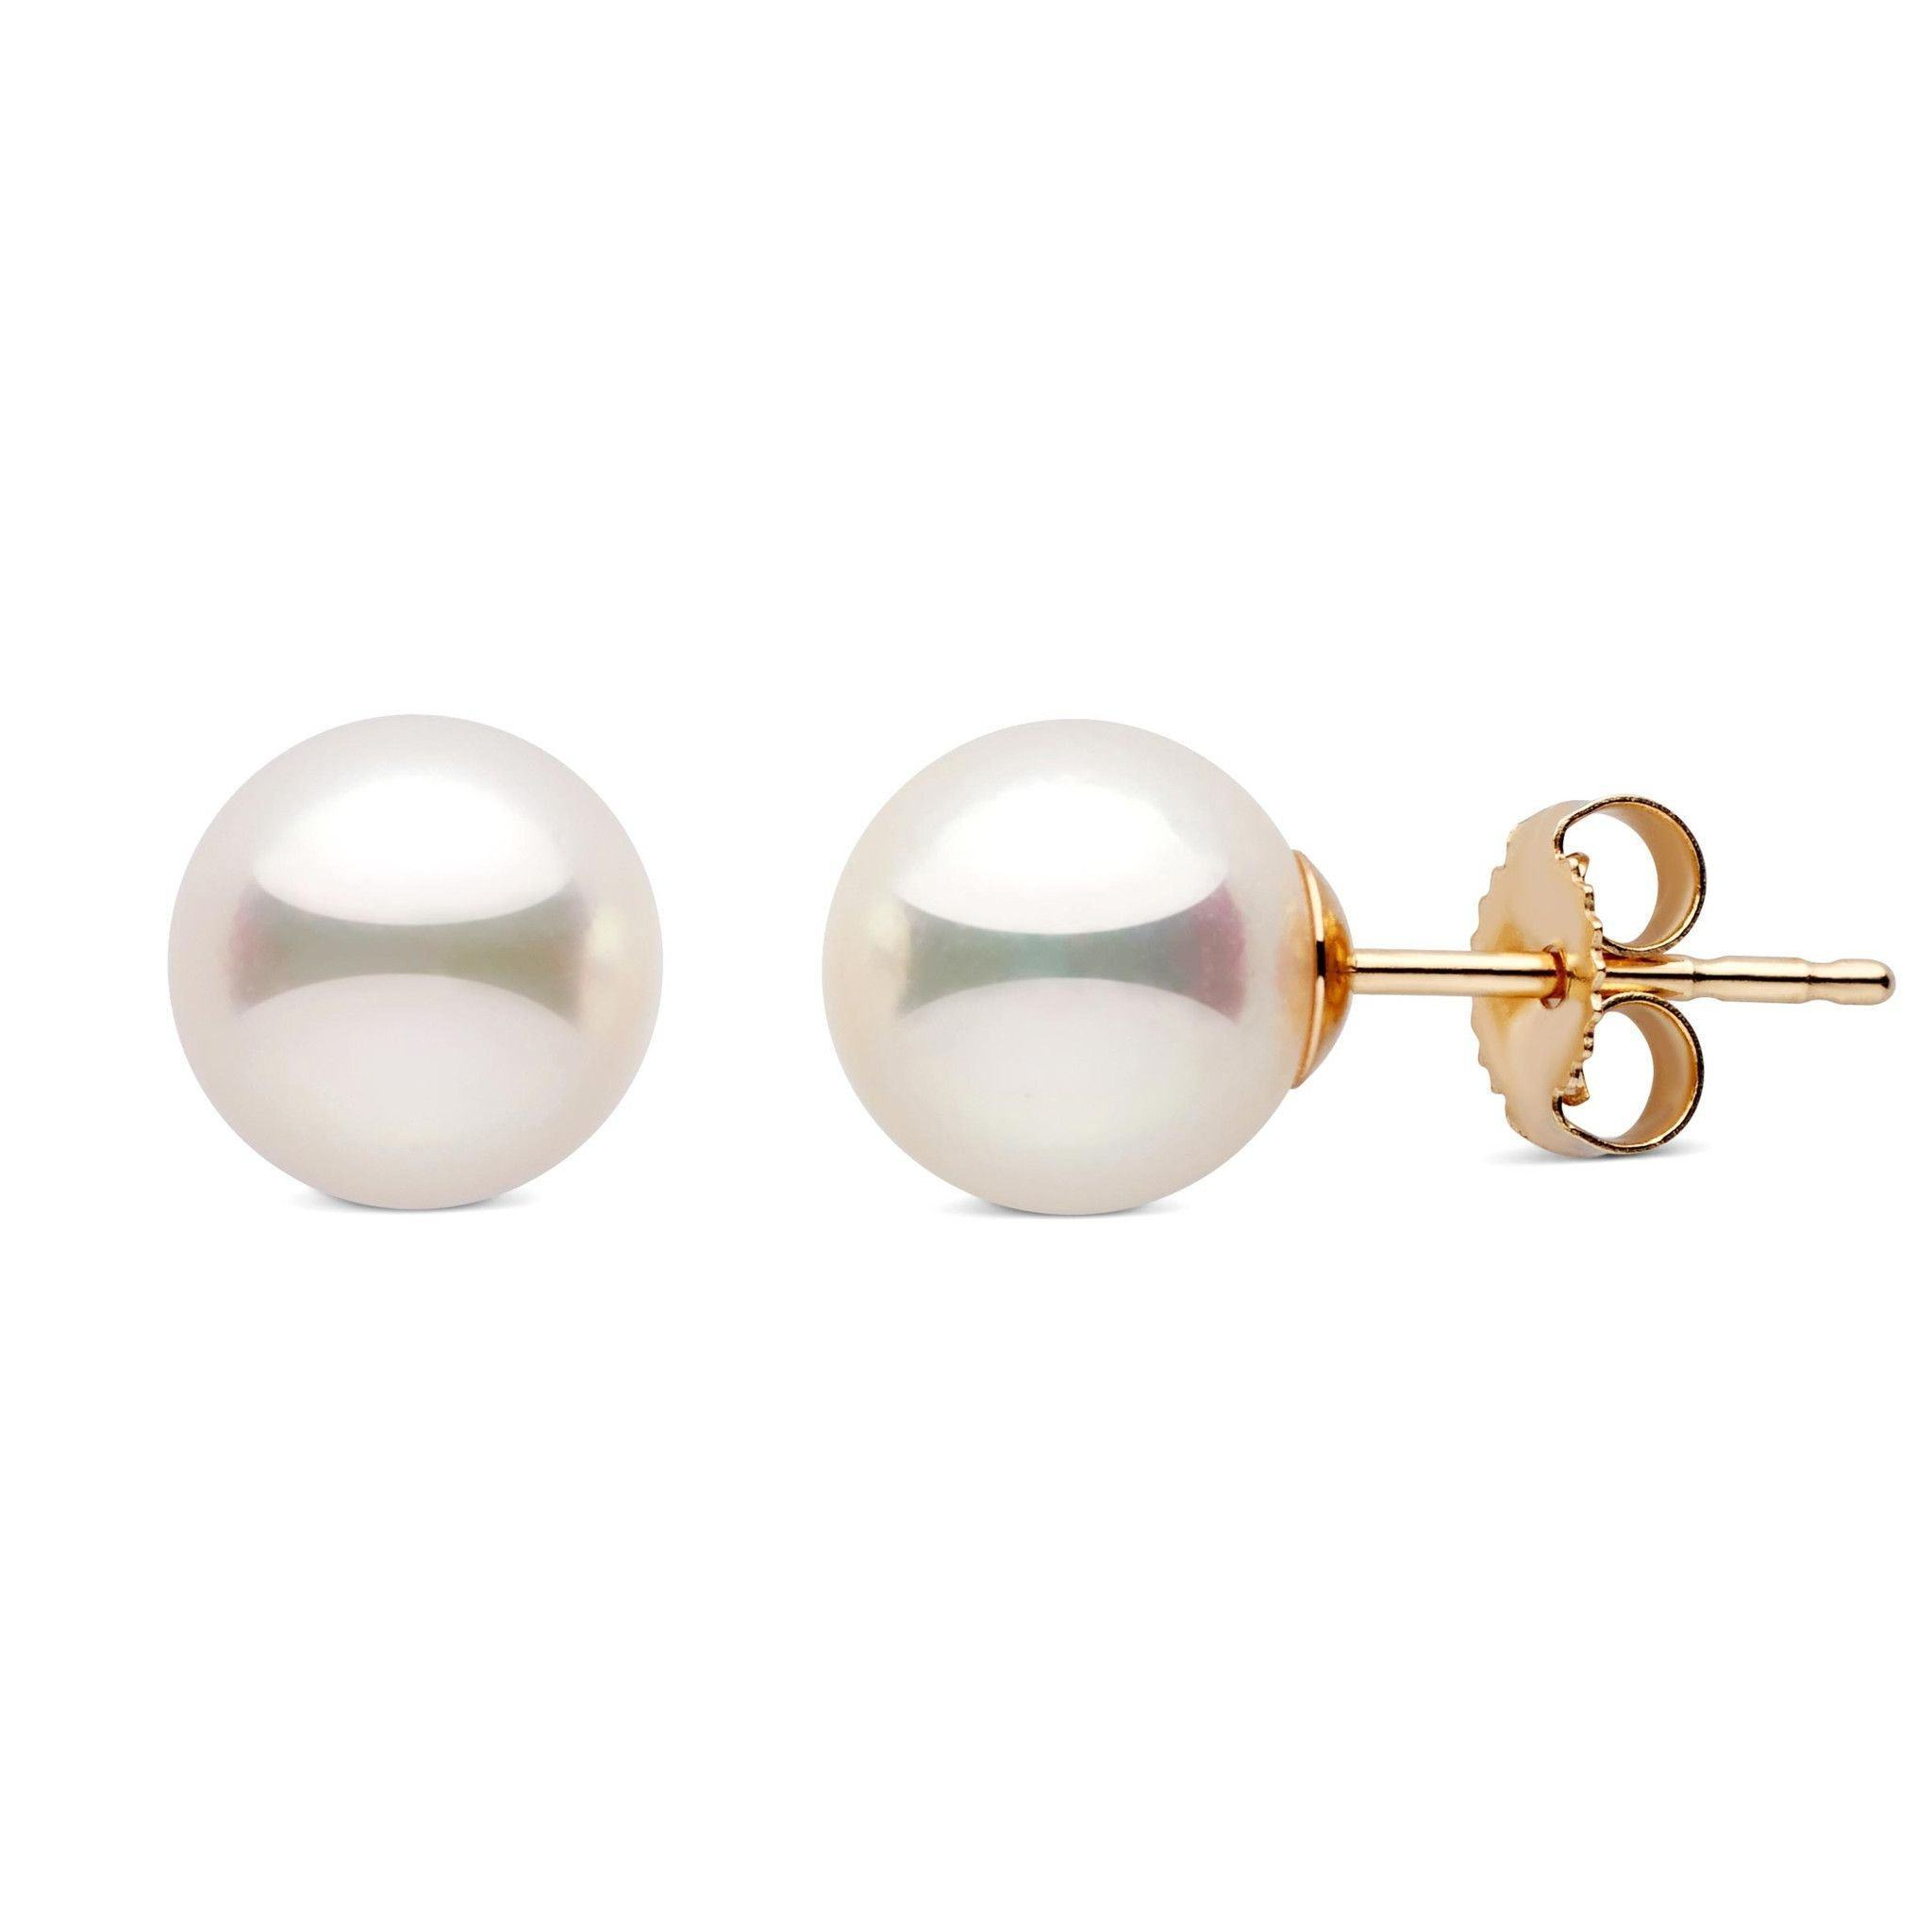 7.5-8.0 mm White Akoya AAA Pearl Stud Earrings